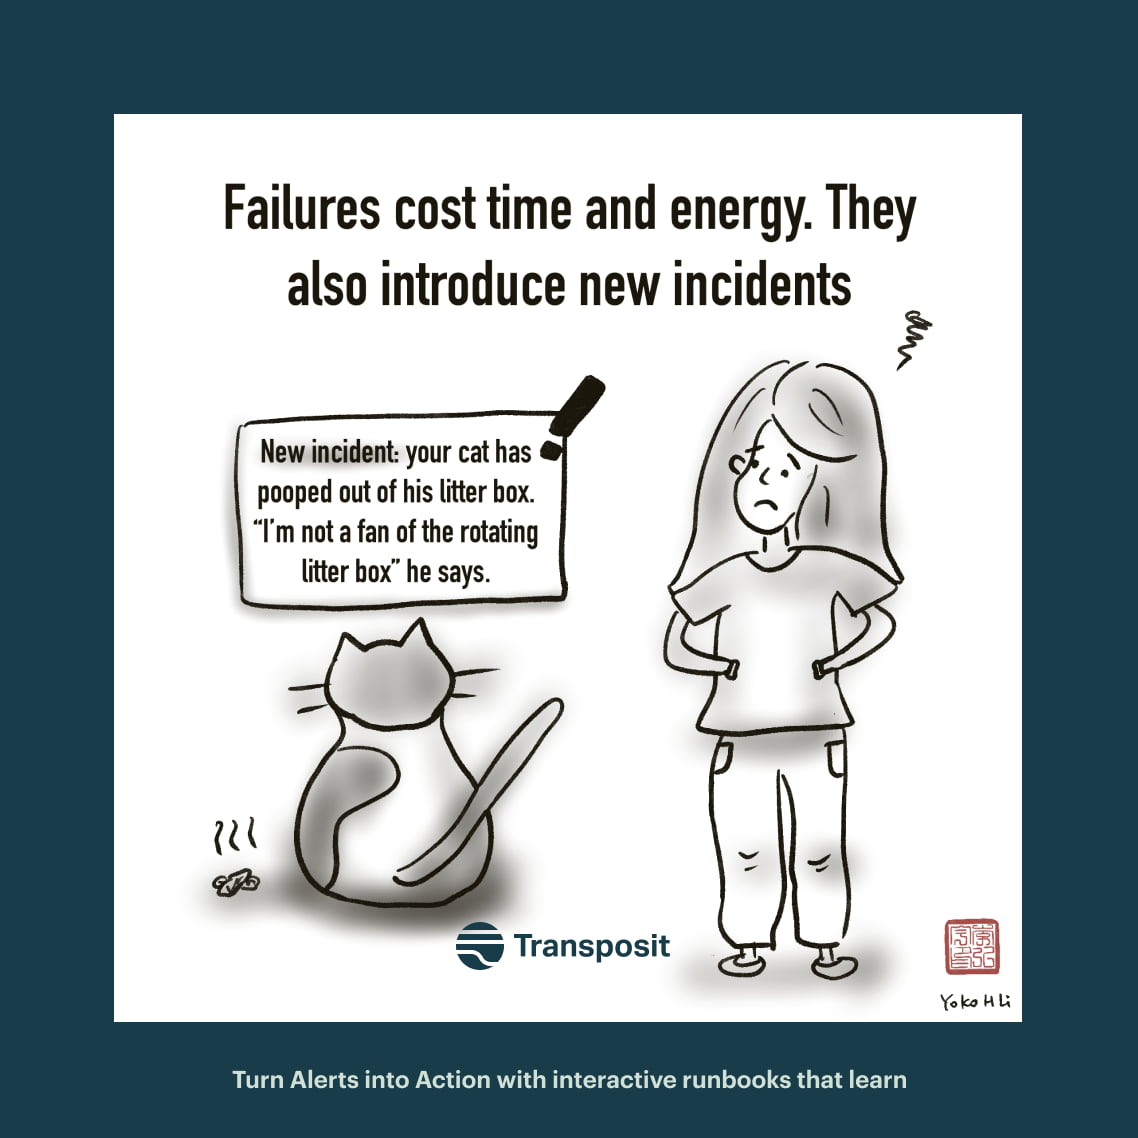 """Failures cost time and energy. They also introduce new incidents. Ticket saying, """"New incident: your cat has pooped out of his litter box. """"I'm not a ran of the rotating litter box"""" he says."""""""